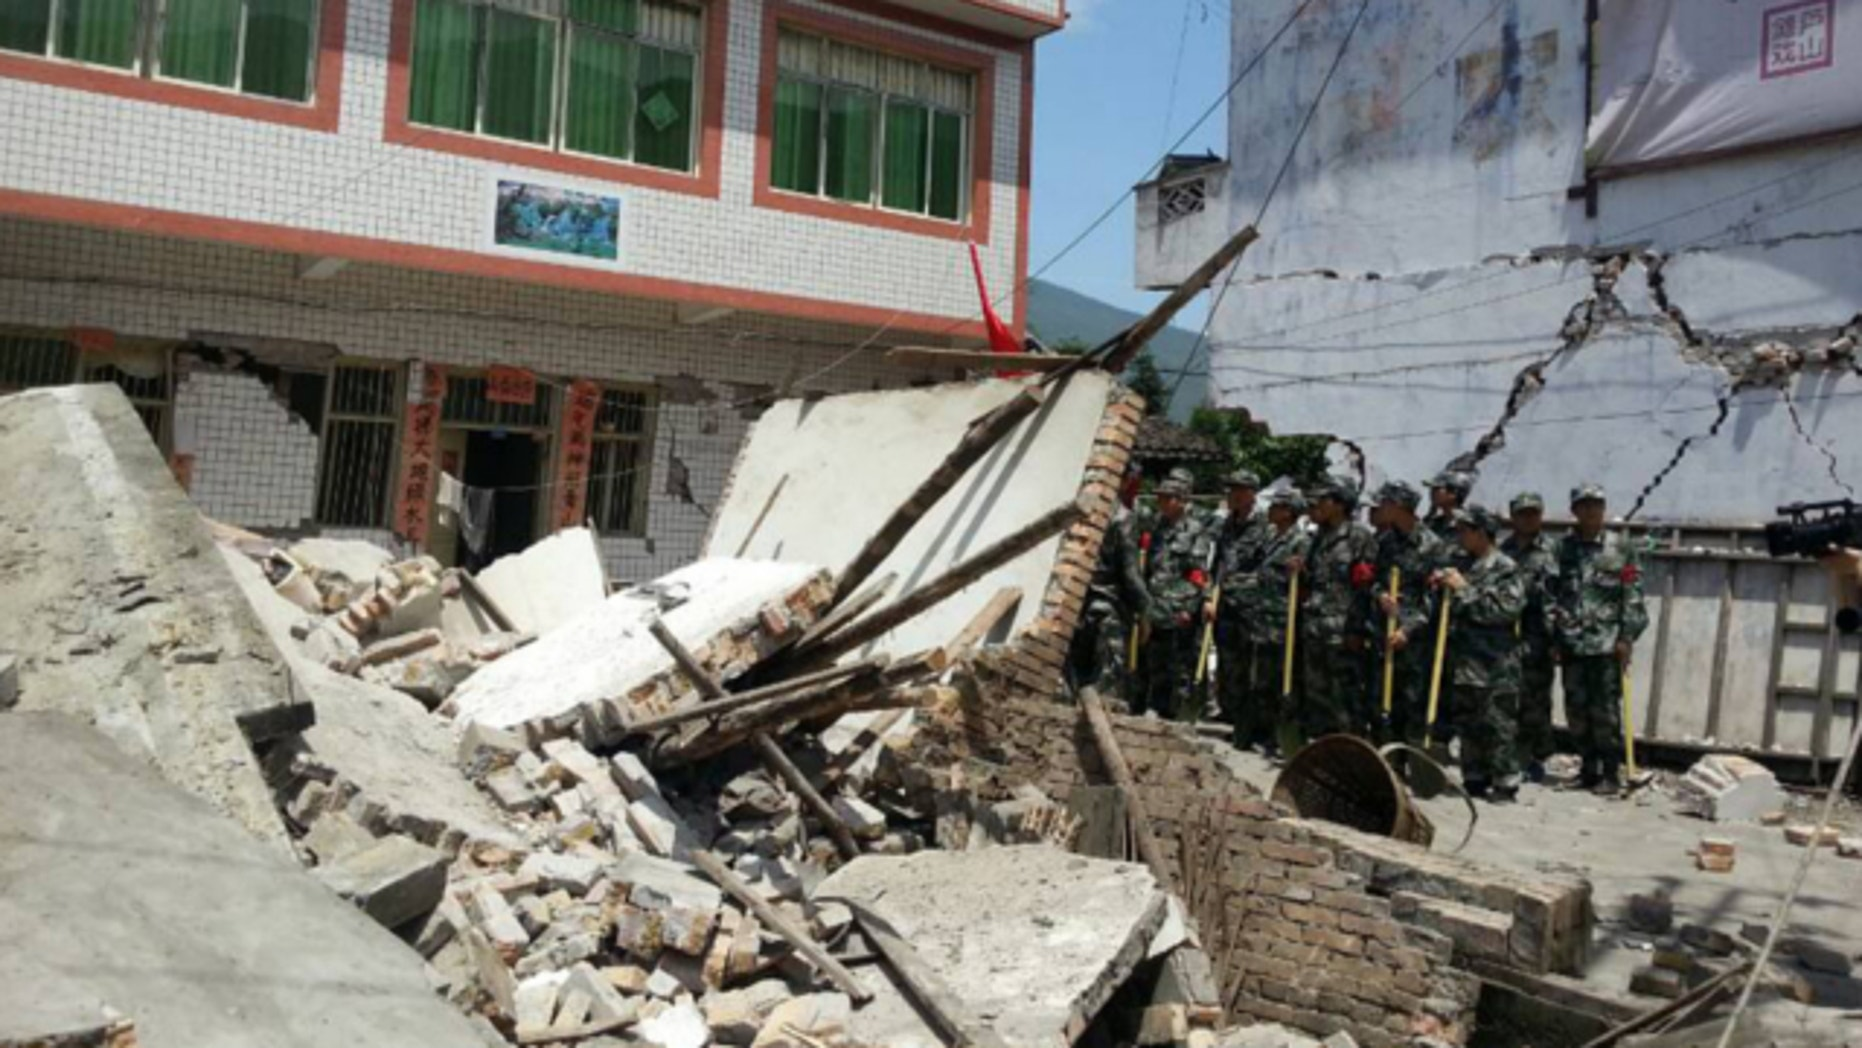 April 20, 2013: In this photo released by China's Xinhua news agency, buildings are destroyed by a powerful earthquake at Gucheng village of Longmen Township of Lushan County in Ya'an City, southwest China's Sichuan Province.